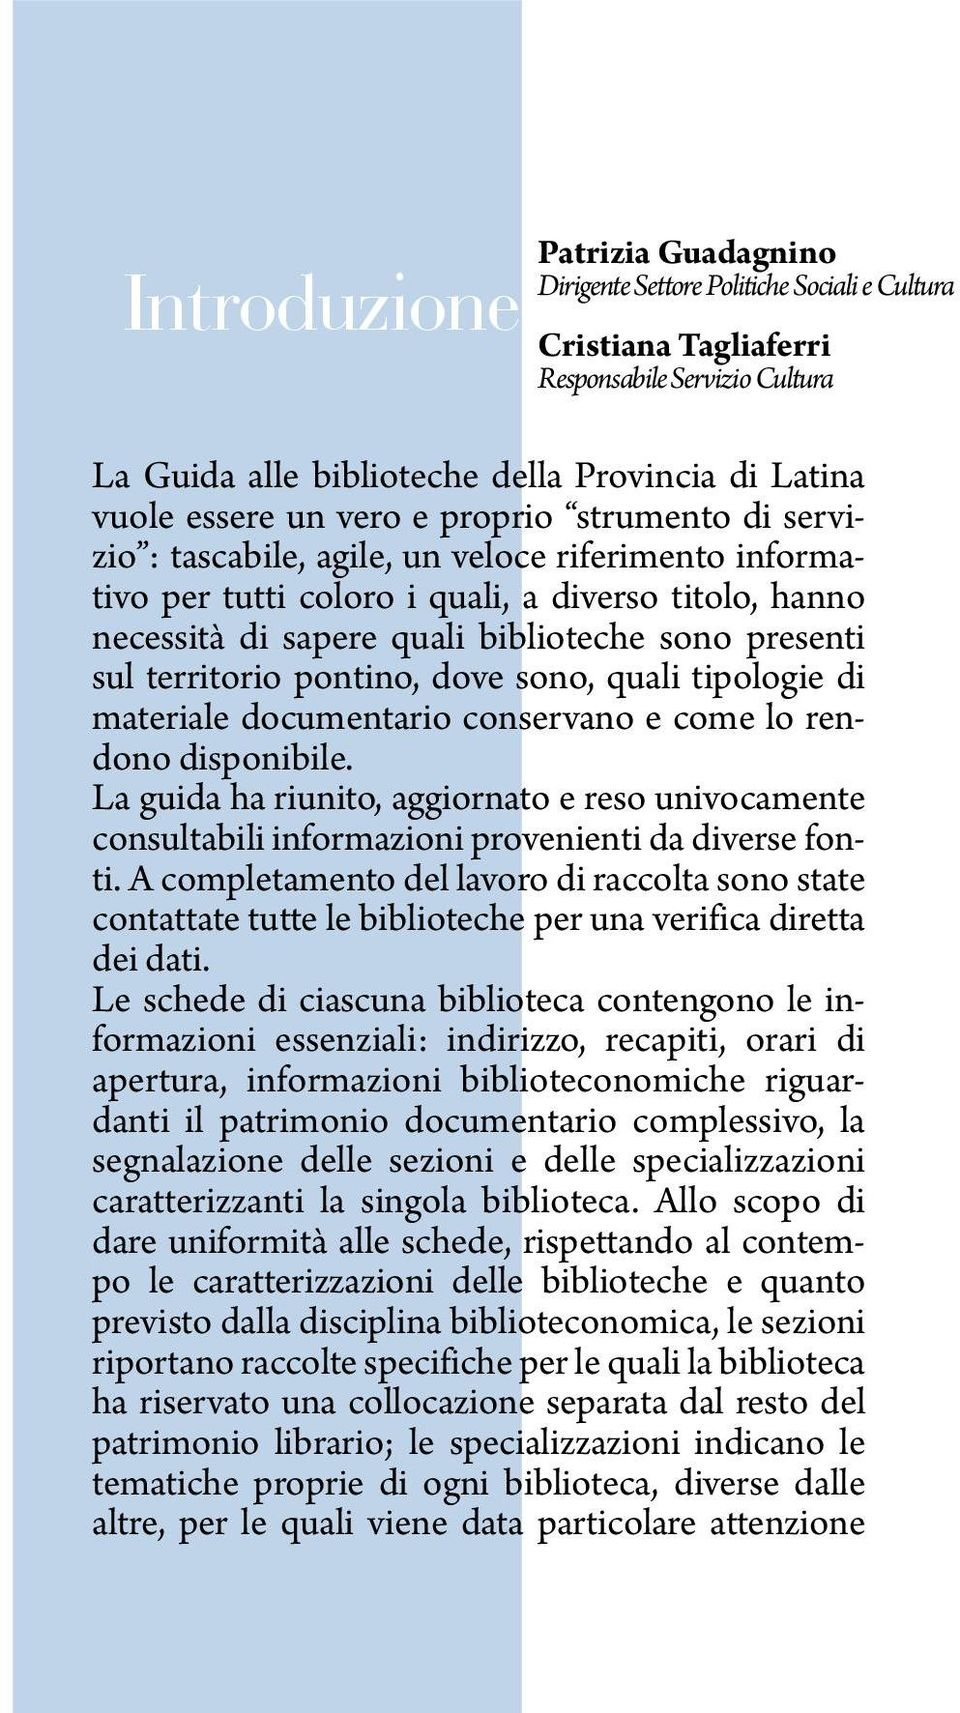 territorio pontino, dove sono, quali tipologie di materiale documentario conservano e come lo rendono disponibile.